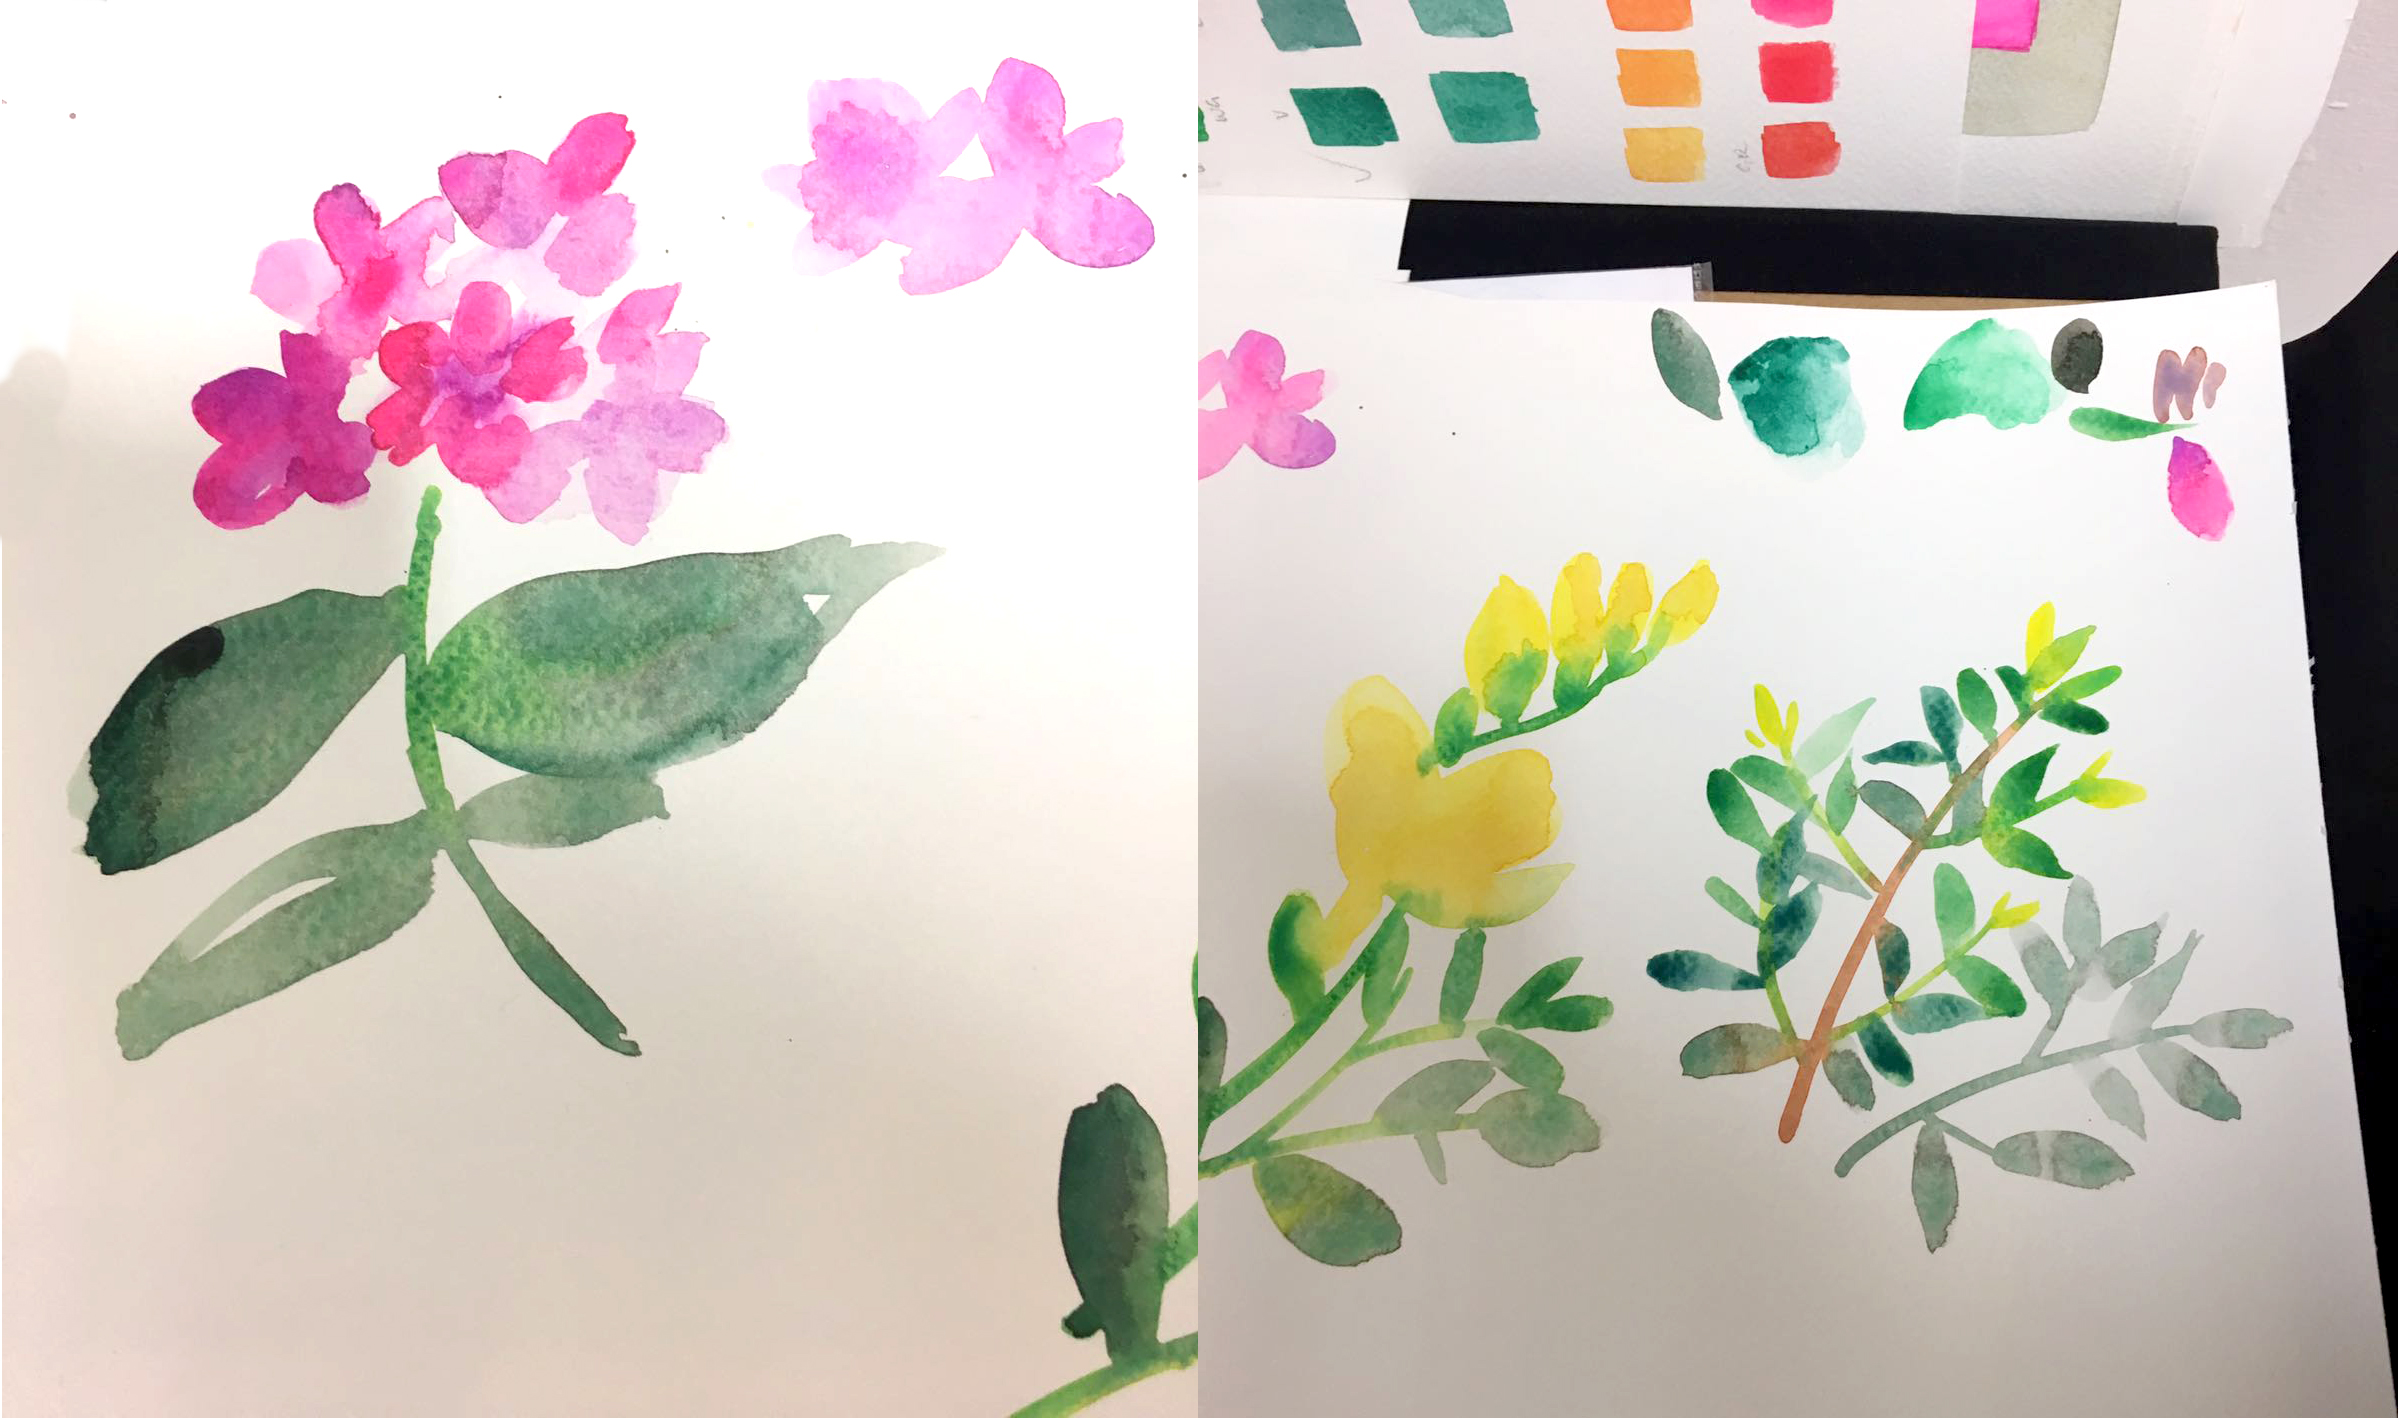 Watercolour flowers in pink, yellow and green